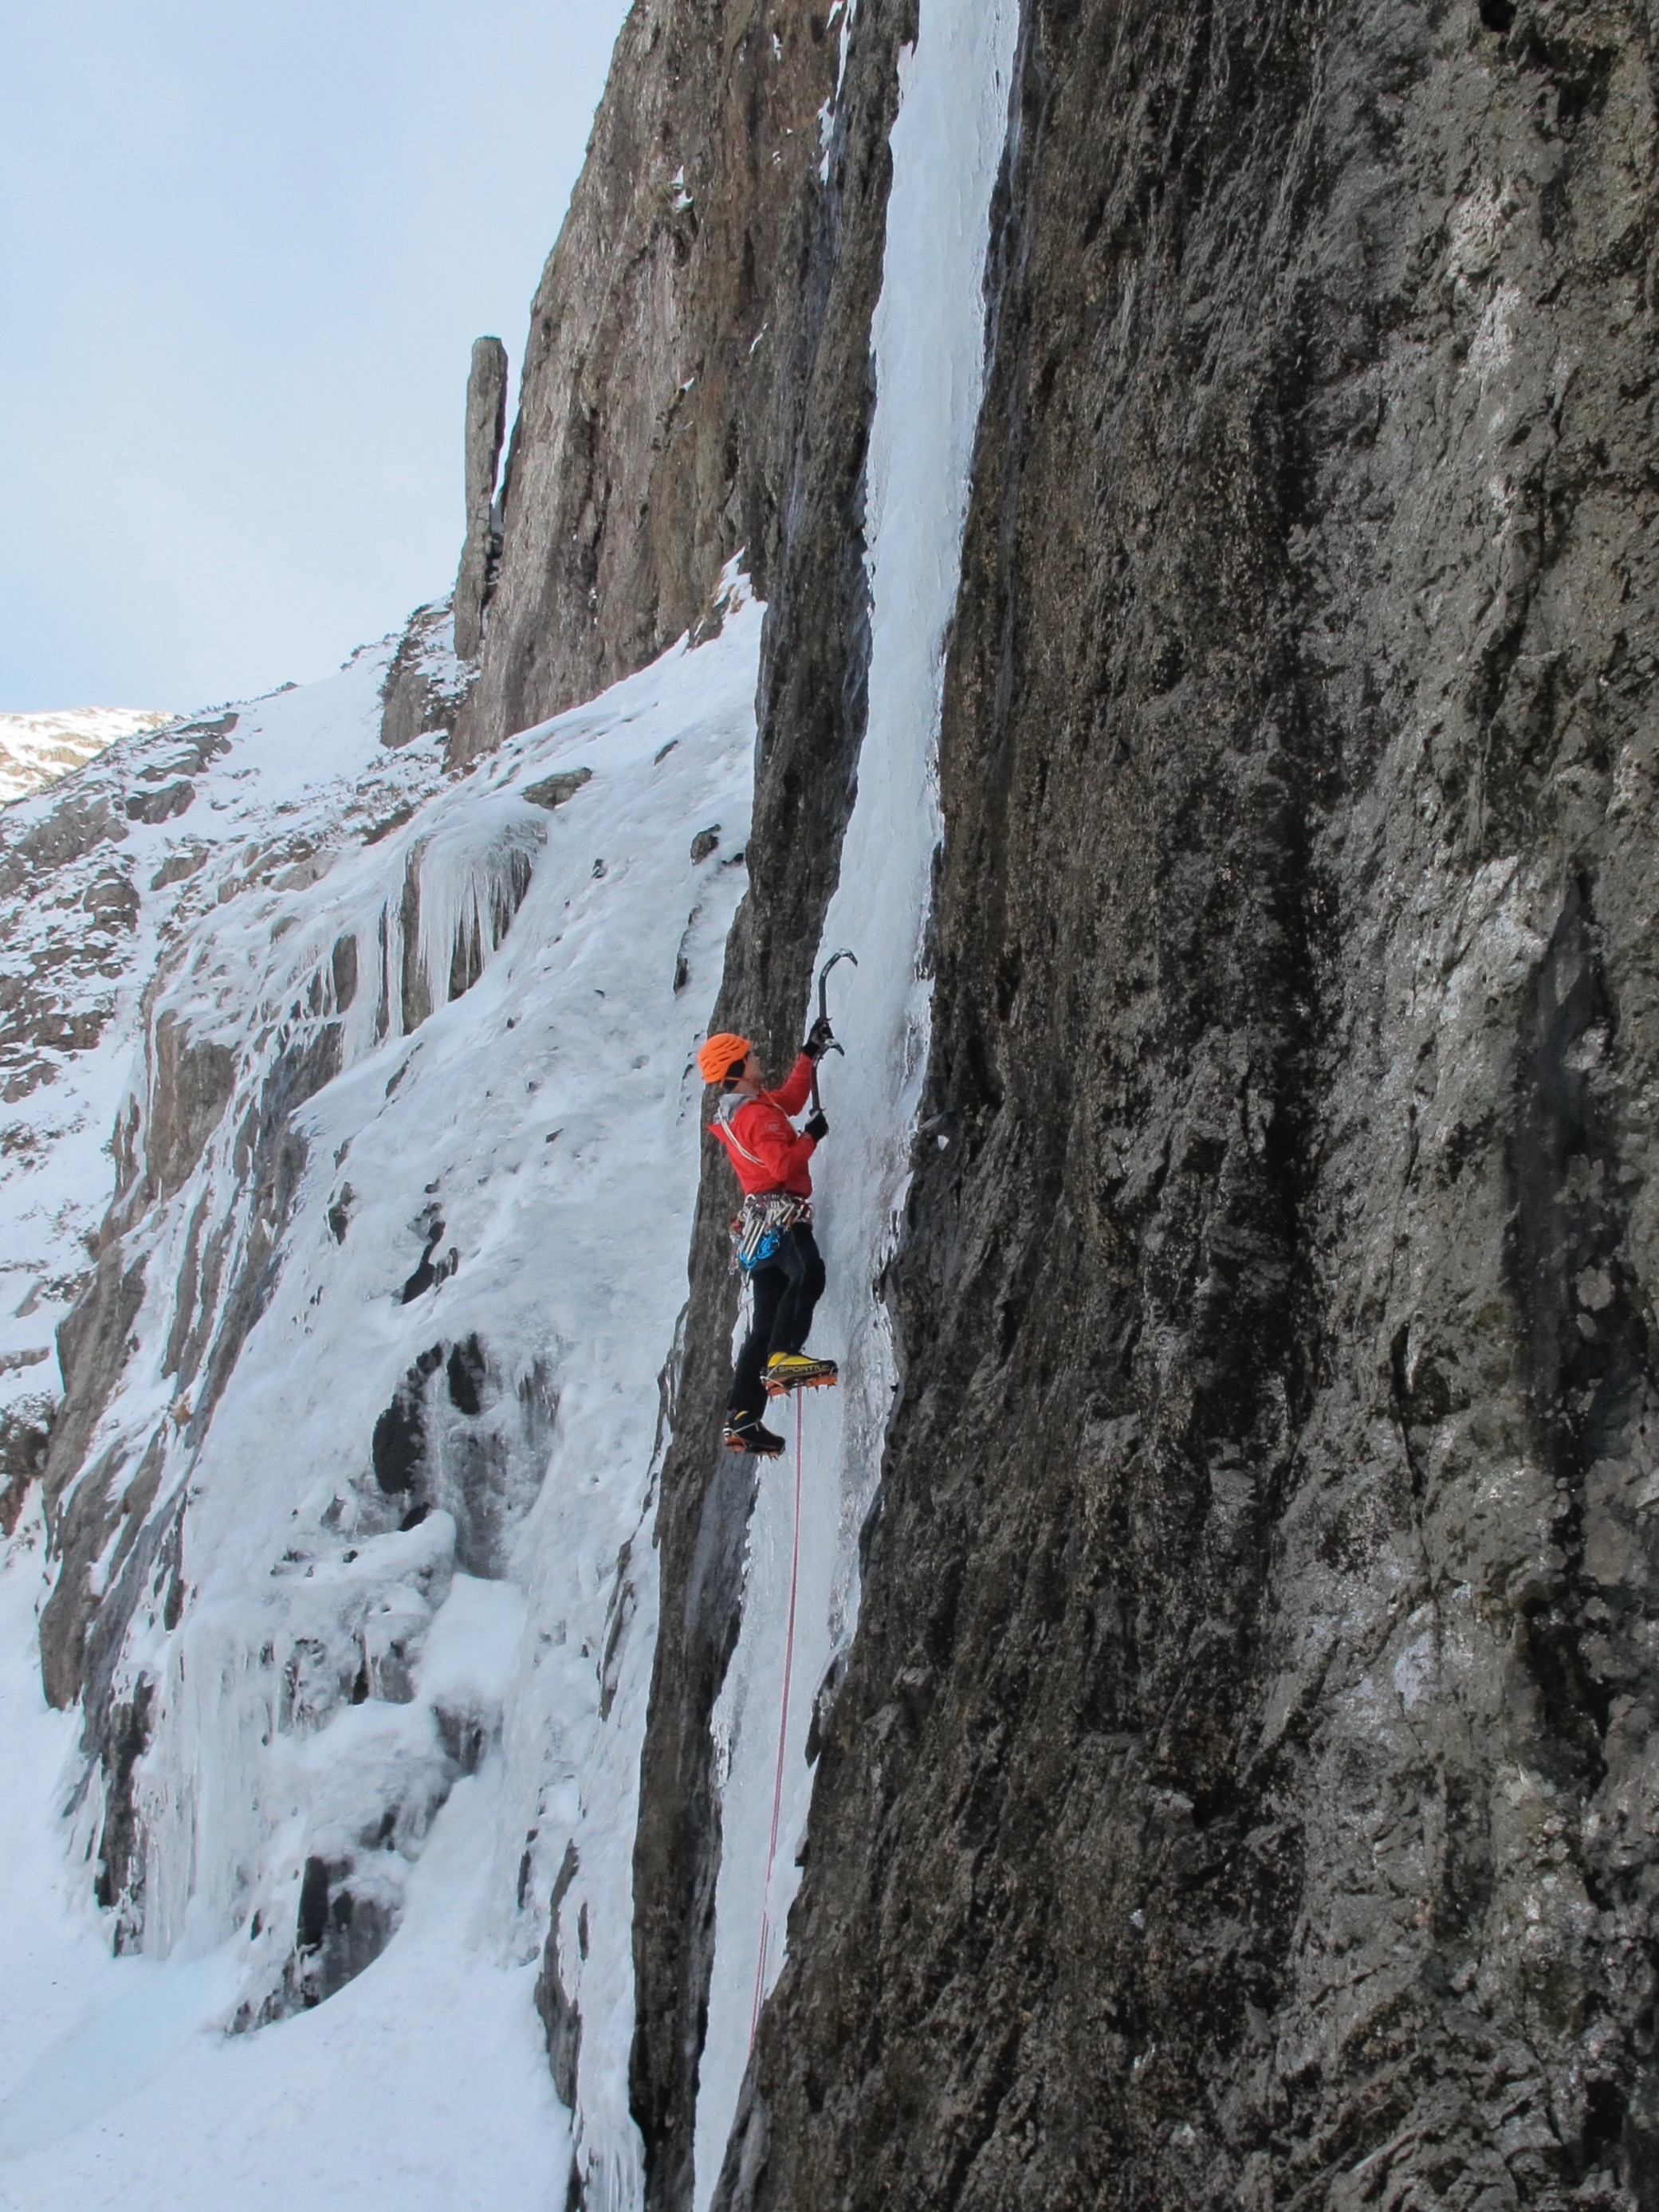 Central Icefall Direct WI 6, the final leg of the 'Welsh Triple Crown' Challenge. Photo Gresham collection